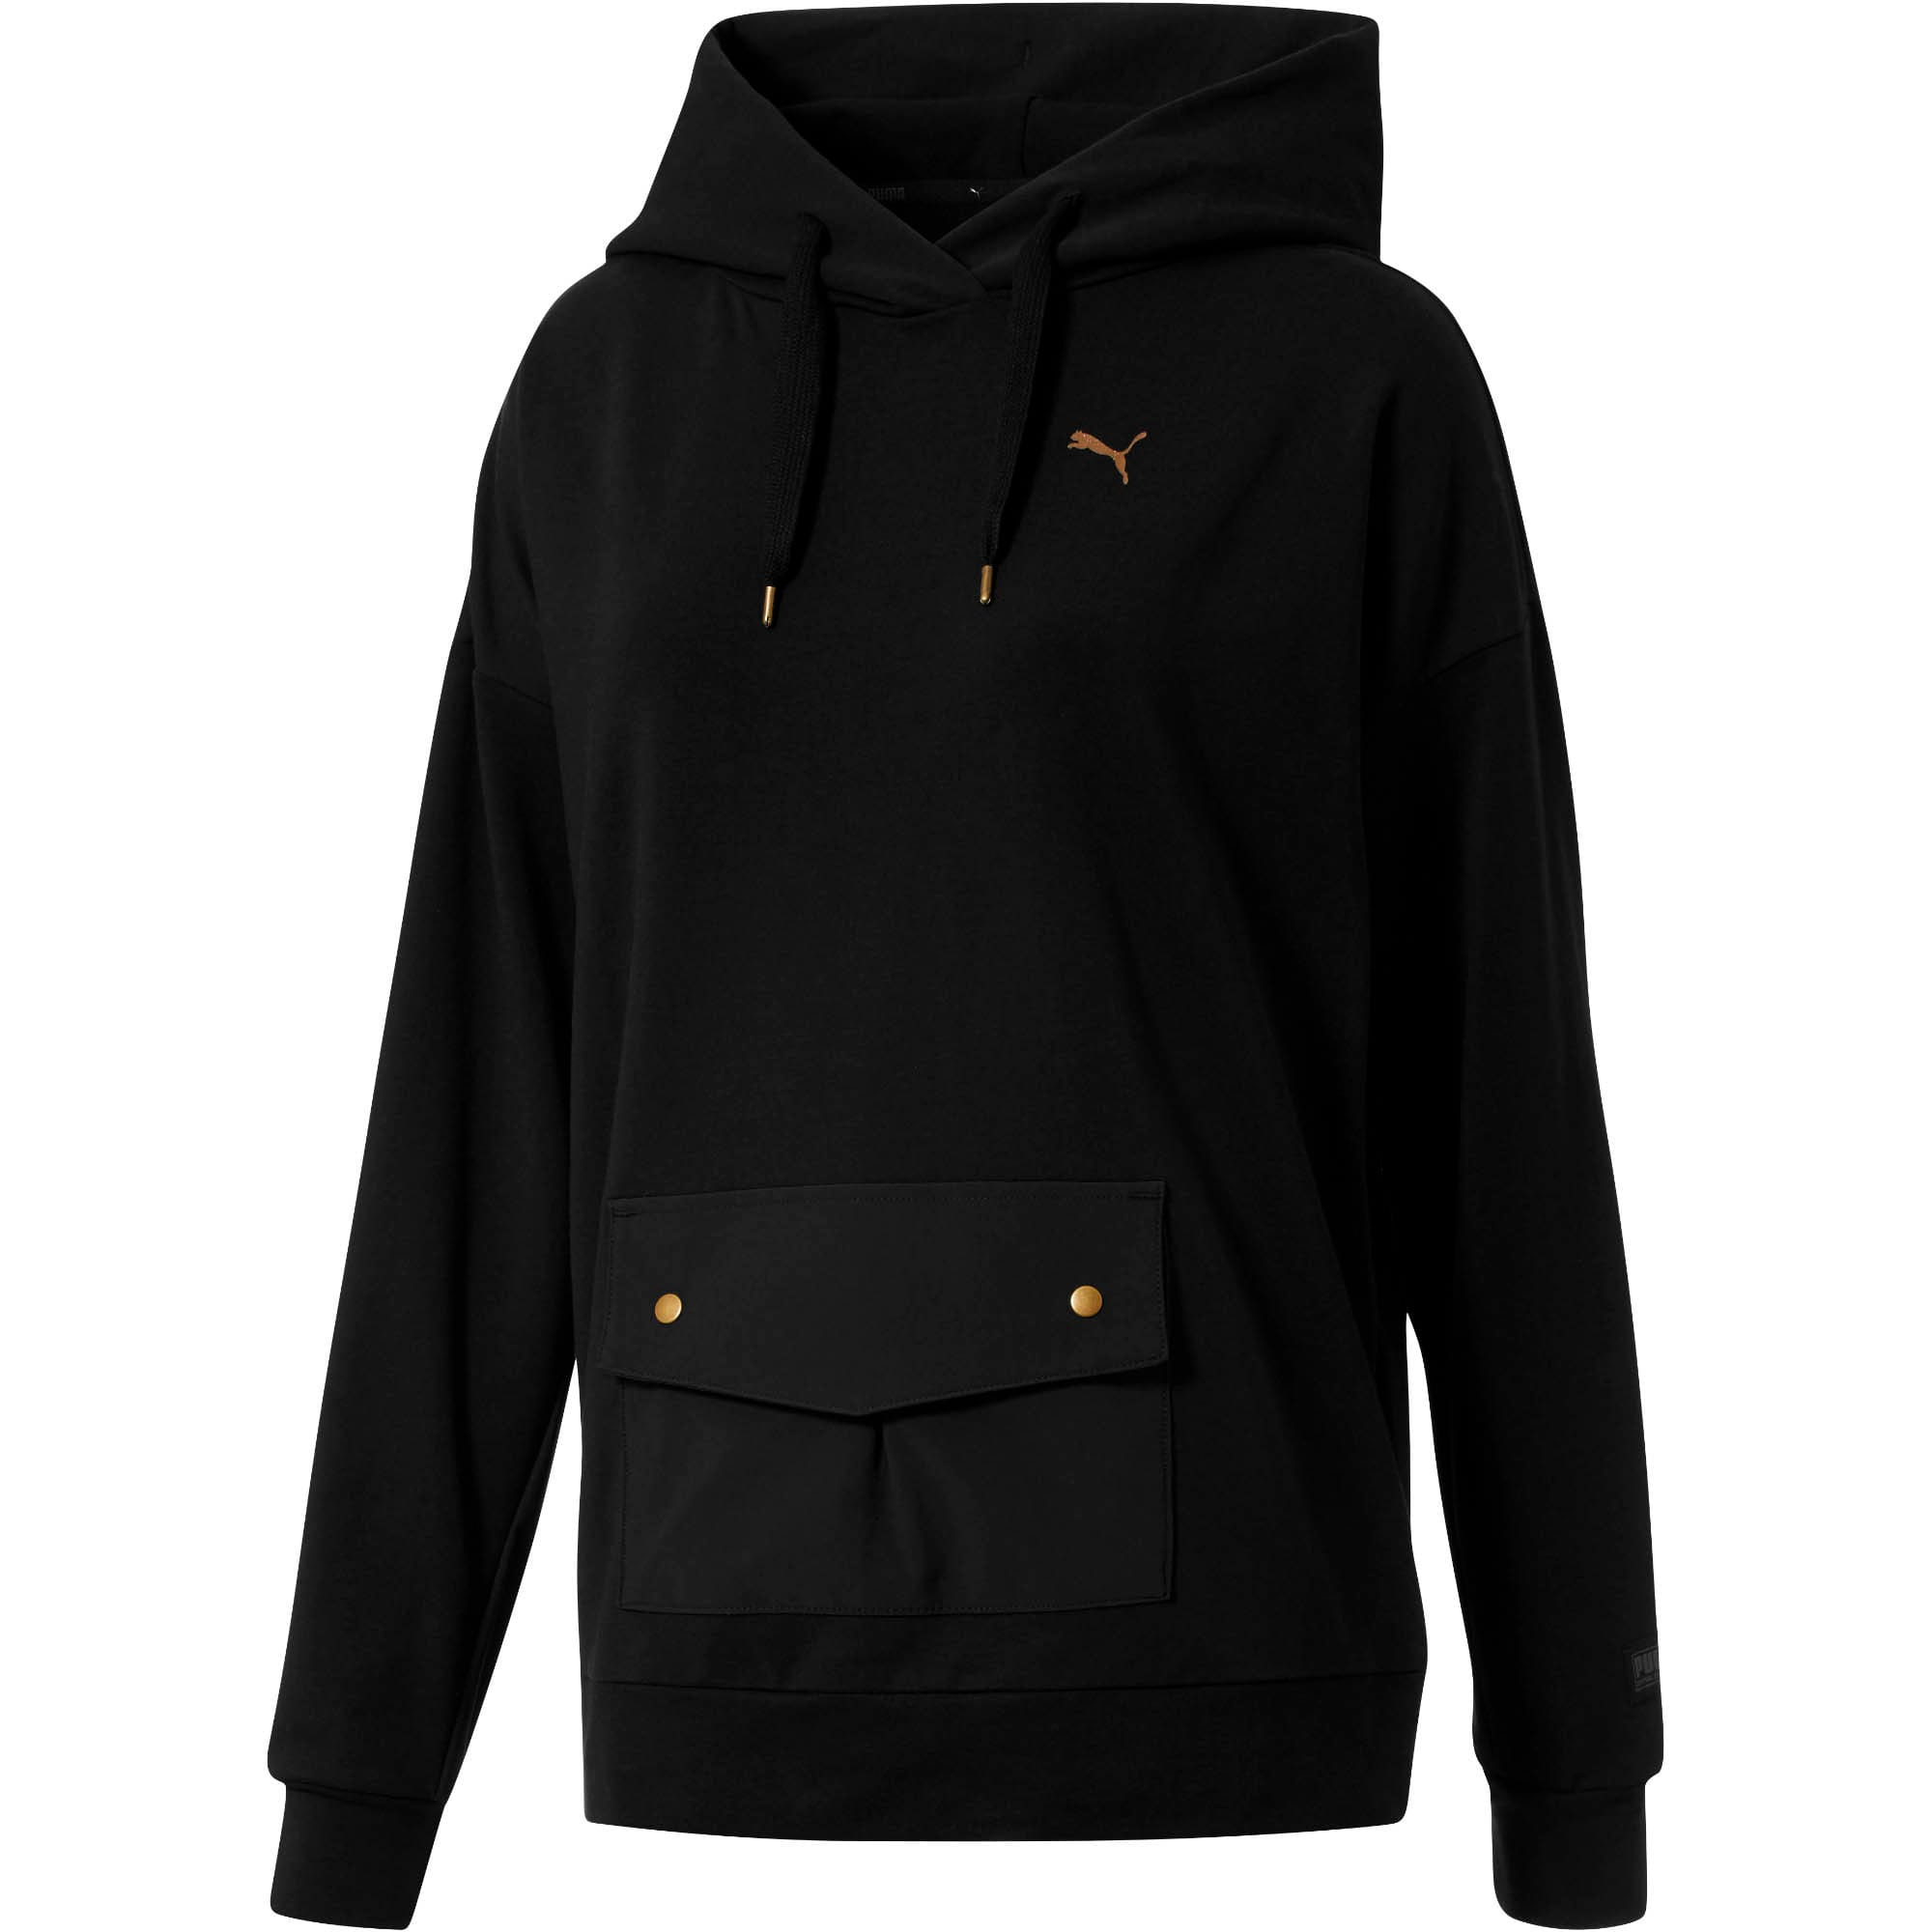 FUSION Hoodie, Cotton Black, large